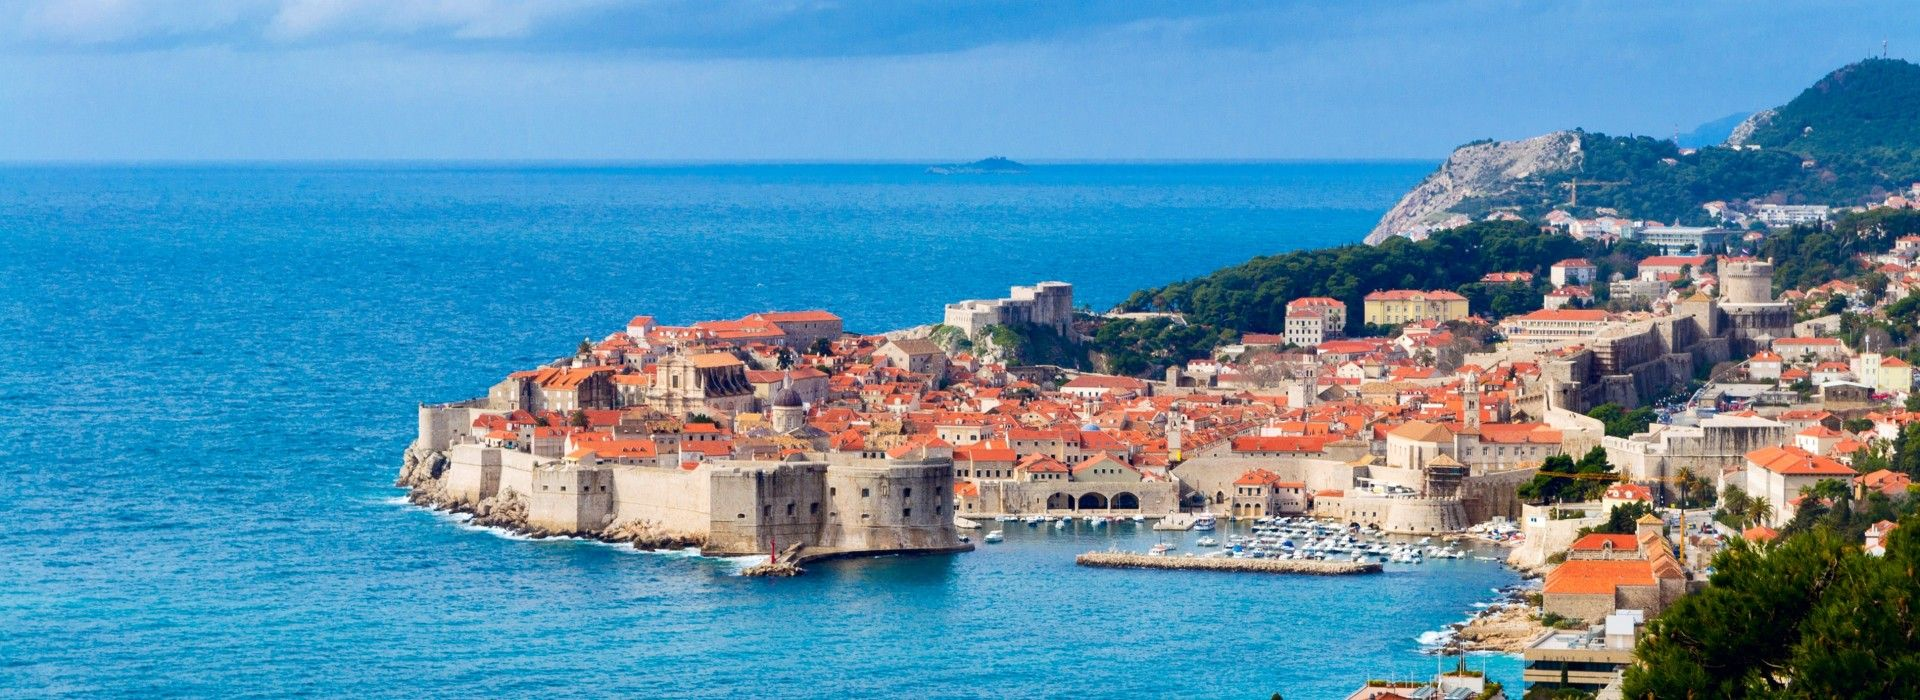 Boat tours, water sports and marine wildlife in Korcula Island